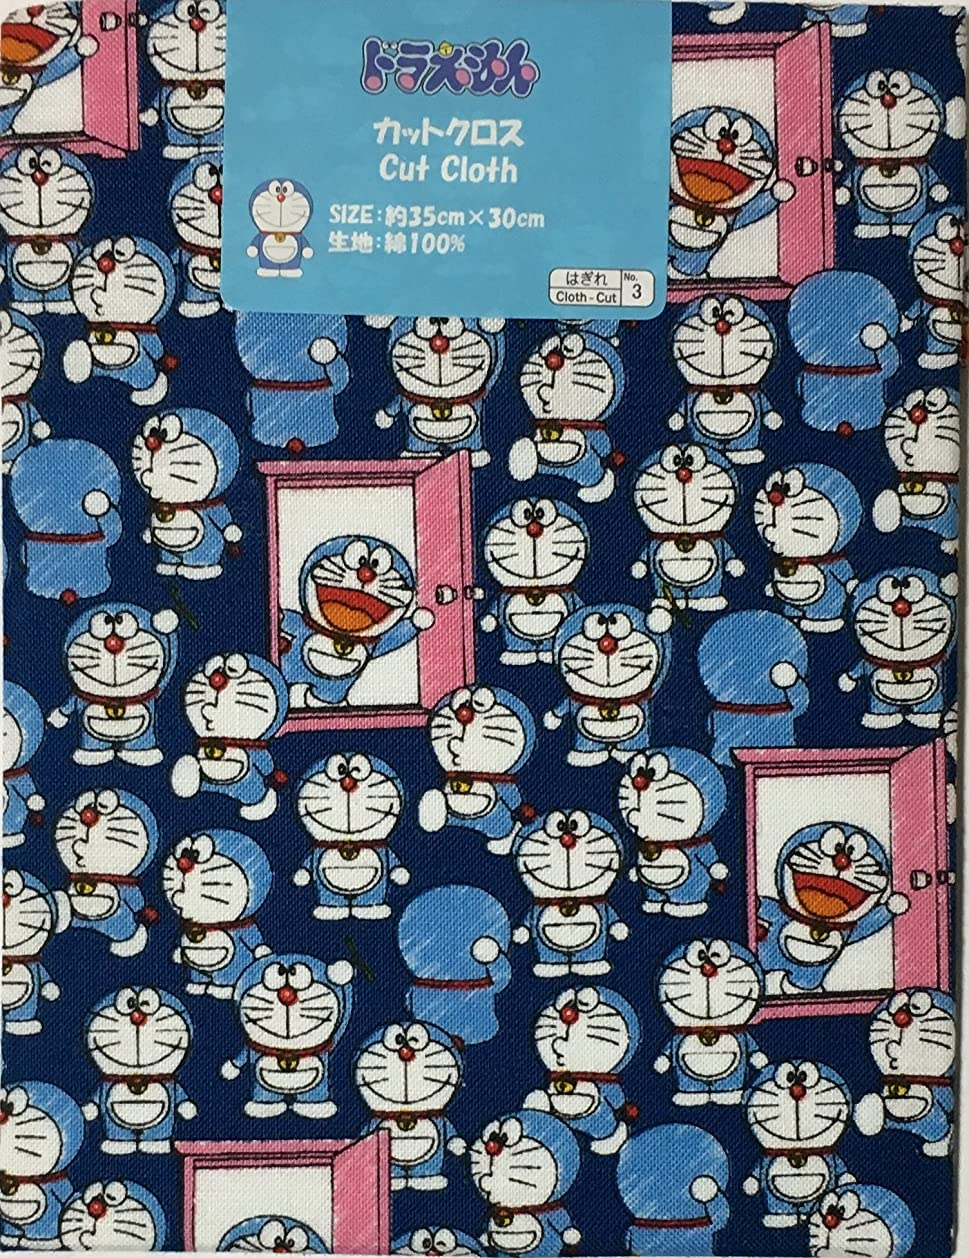 Japan Cut Cloth 35×30cm Cotton Craft Fabric Patchwork Scrapbooking (Doraemon) wnzni5606